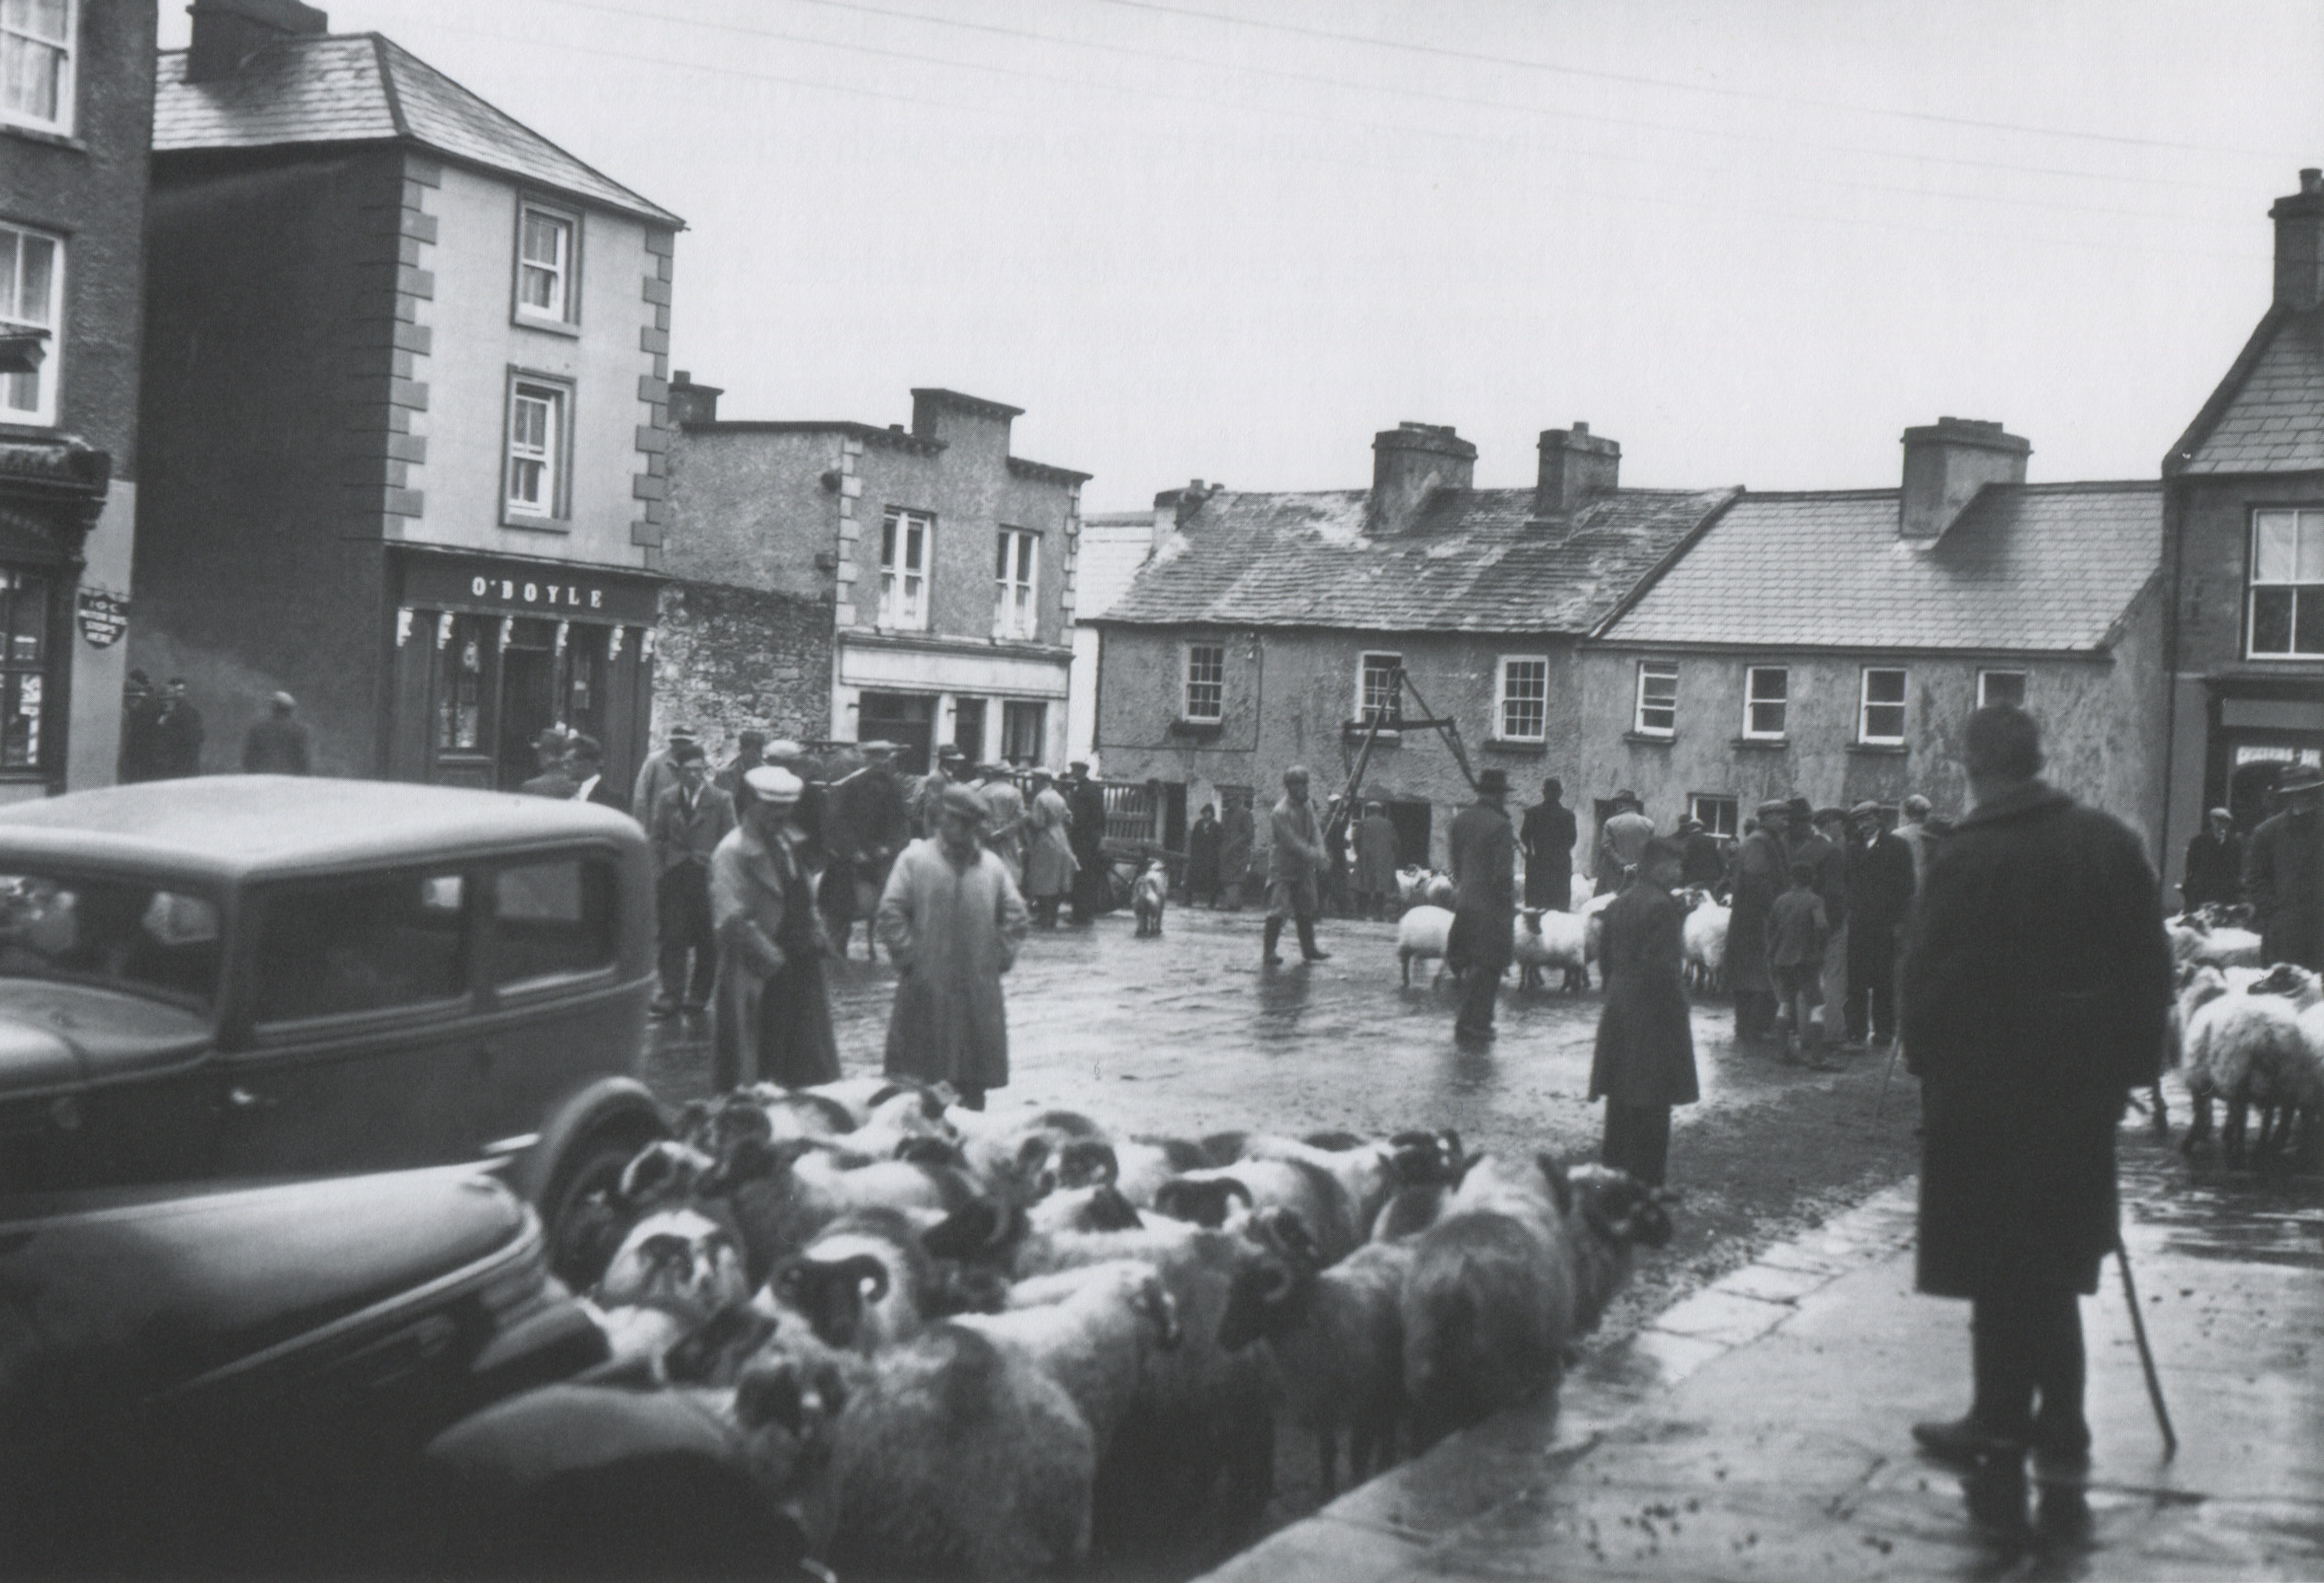 Sheep fair on Main Street in Newport, Co. Mayo. Many of the buildings can still be identified today.